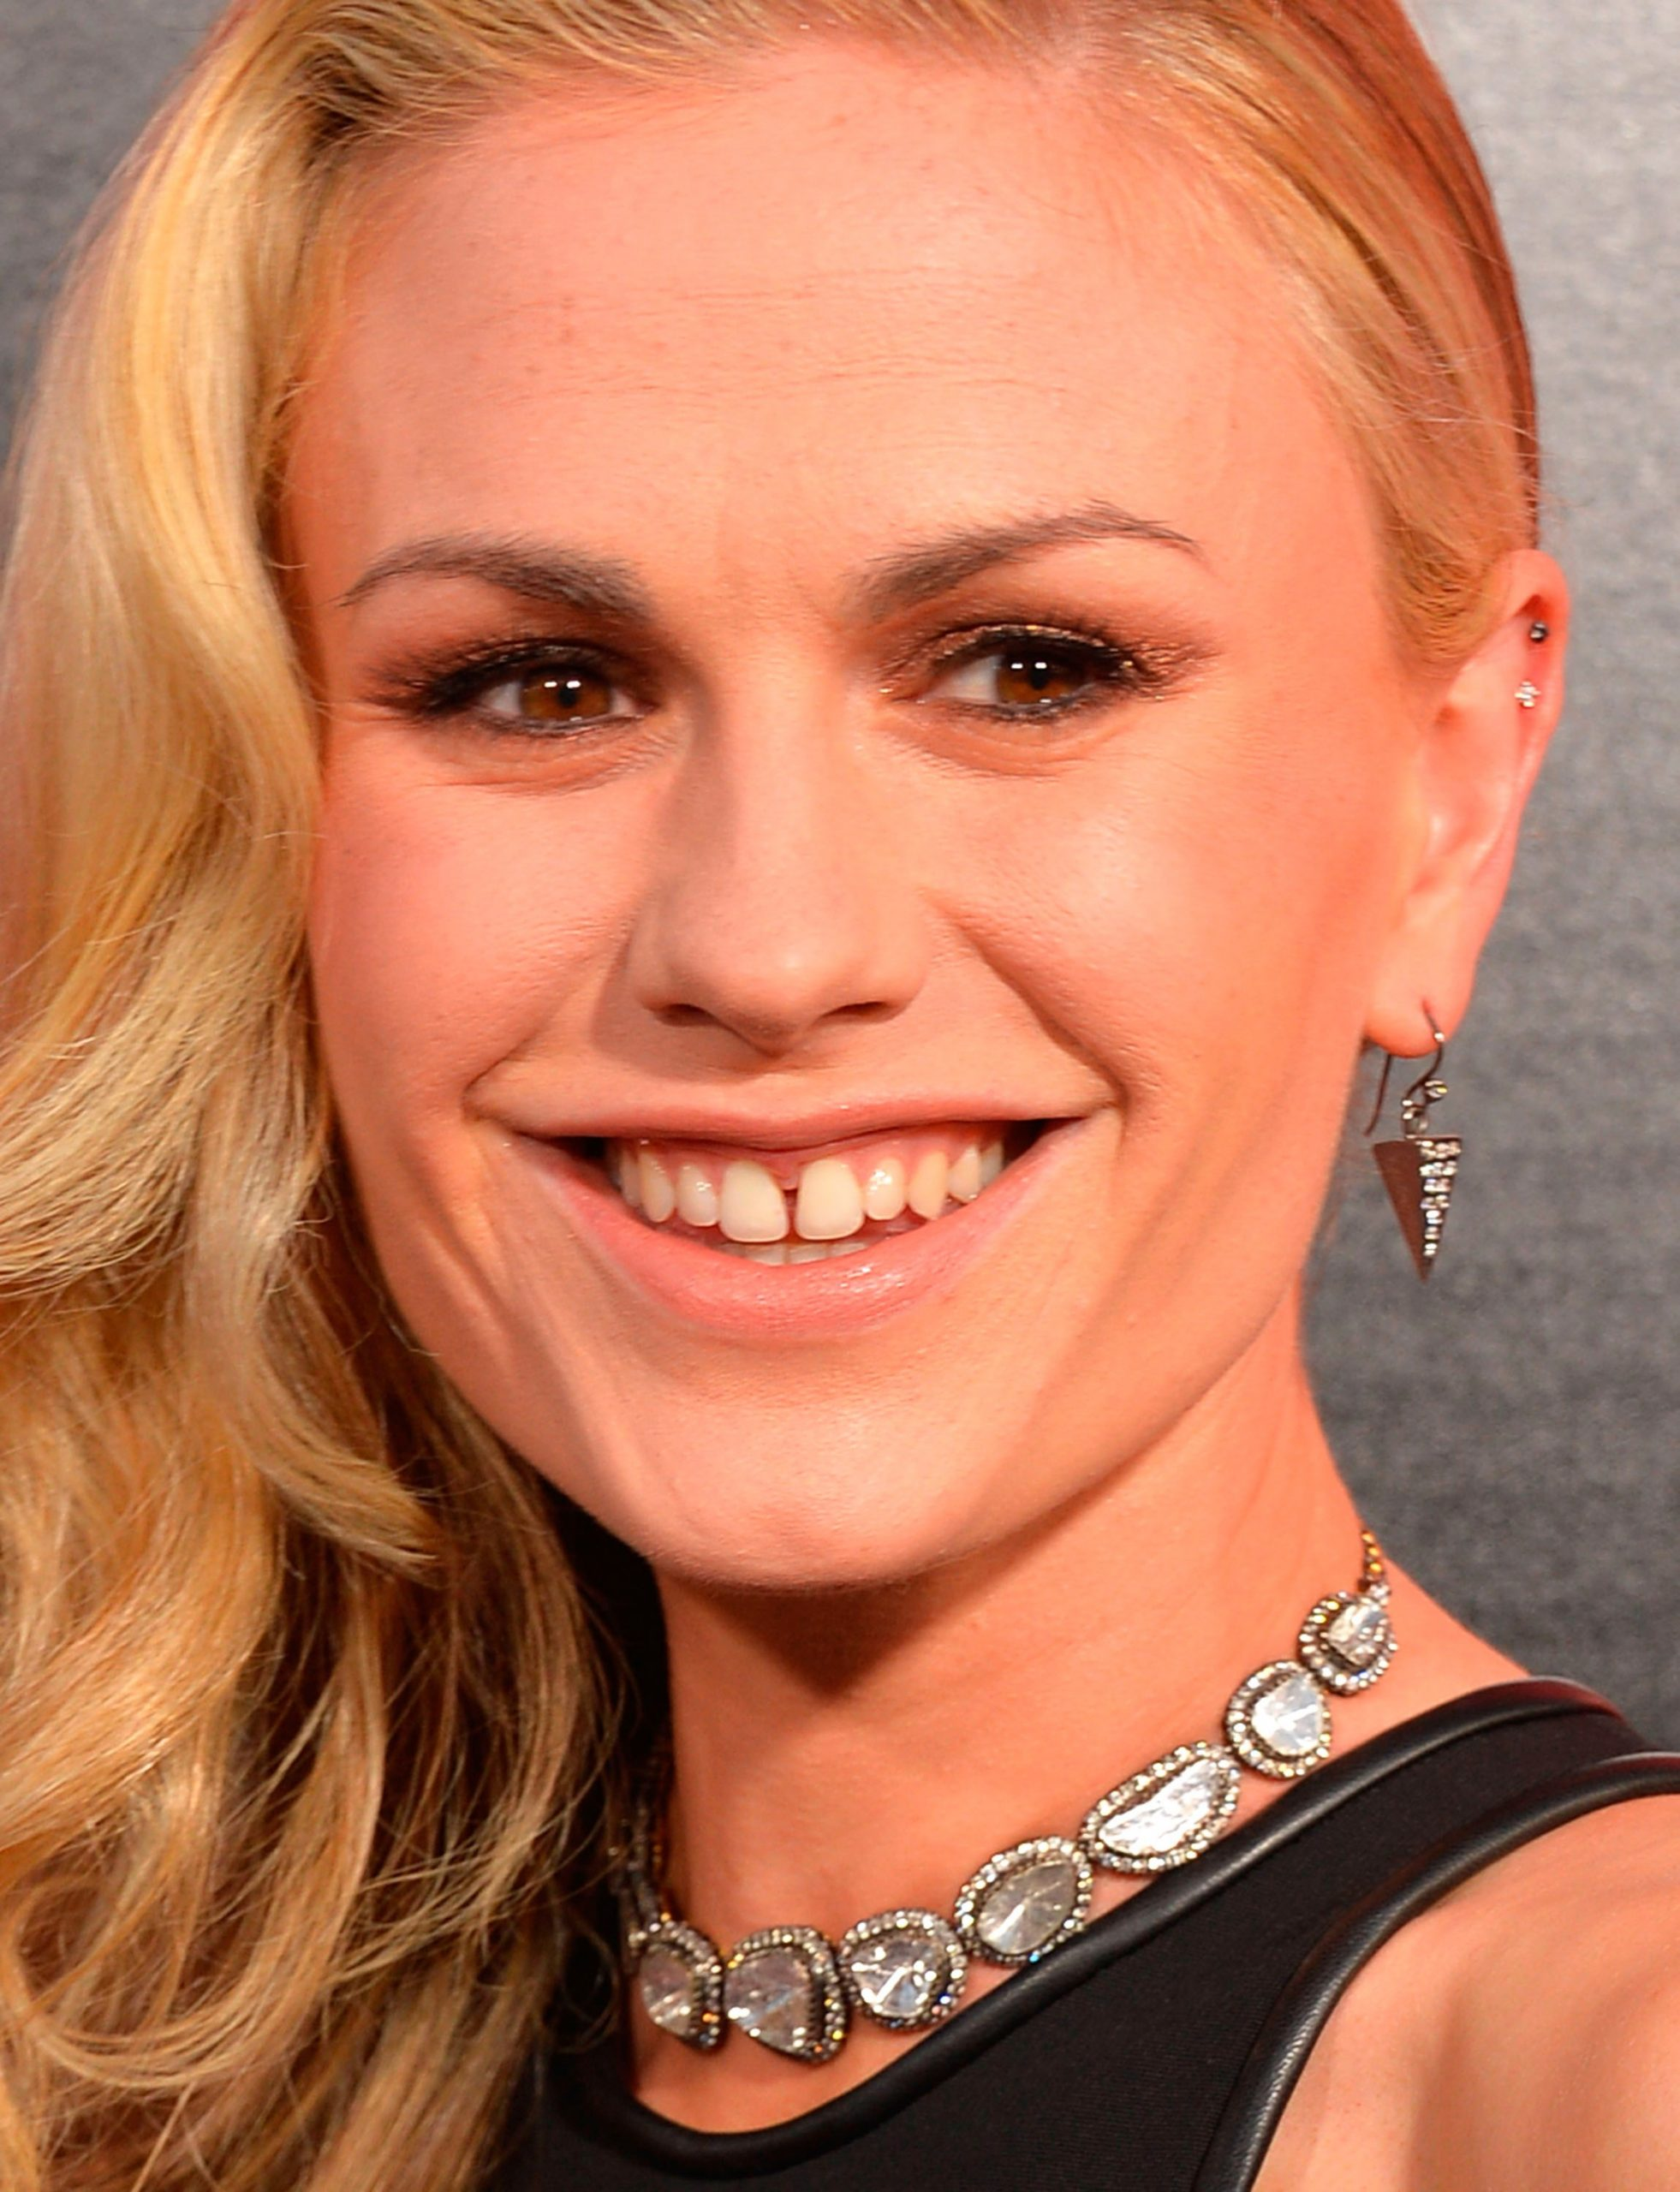 Teeth with character: Anna Paquin